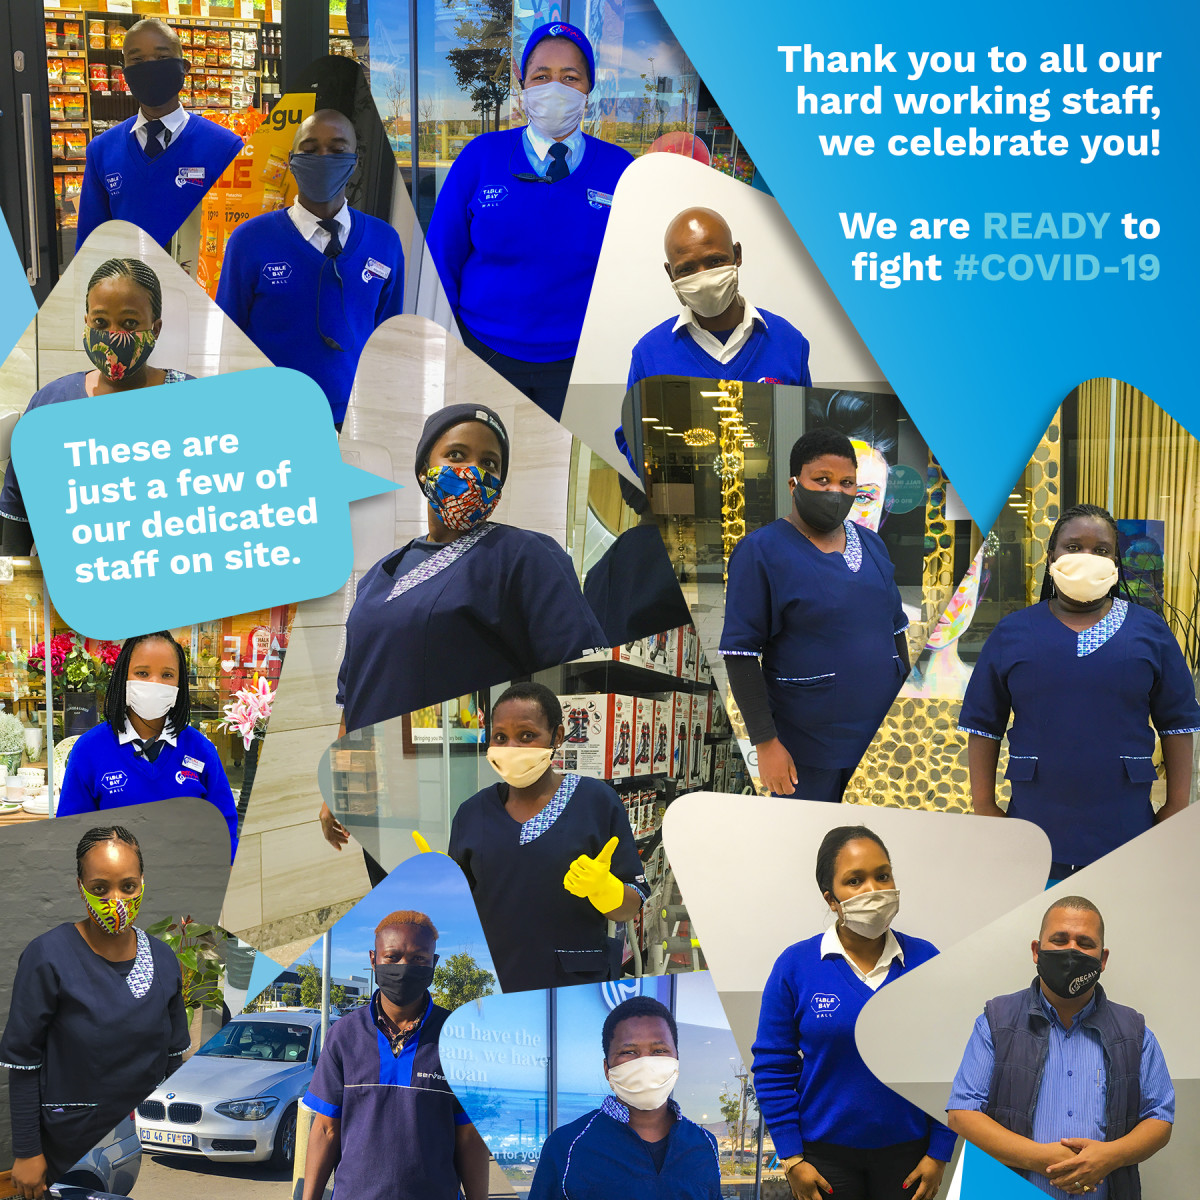 Thank you to all our hard working staff, we celebrate you!